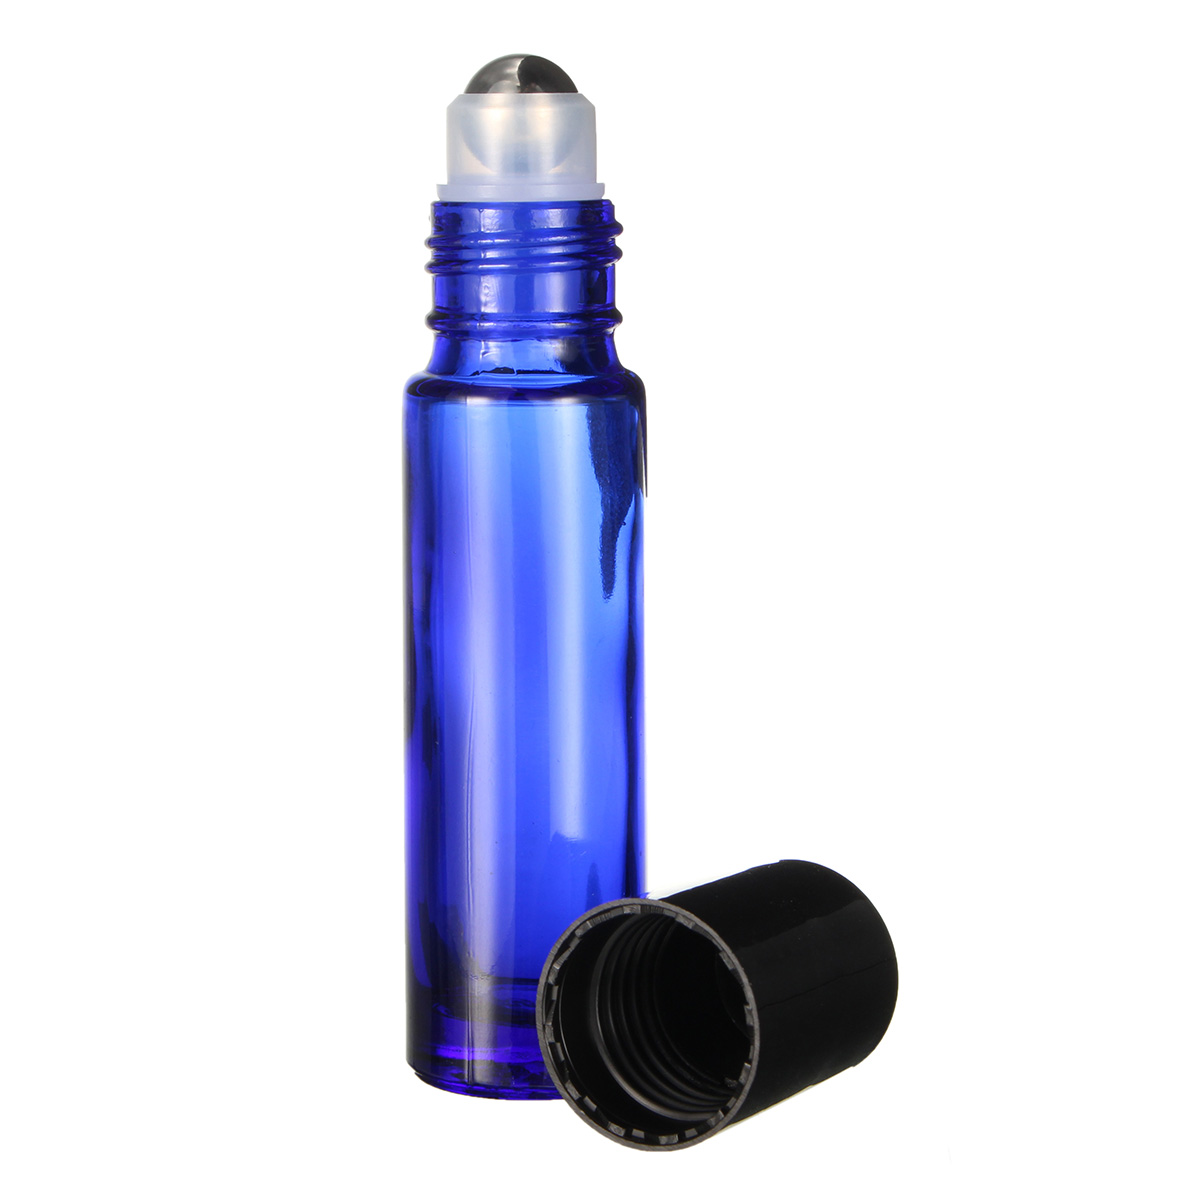 6Pcs 10mL Cobalt Blue Glass Roll on Essential Oil Bottle Refillable Steel Roller Ball with Droppers